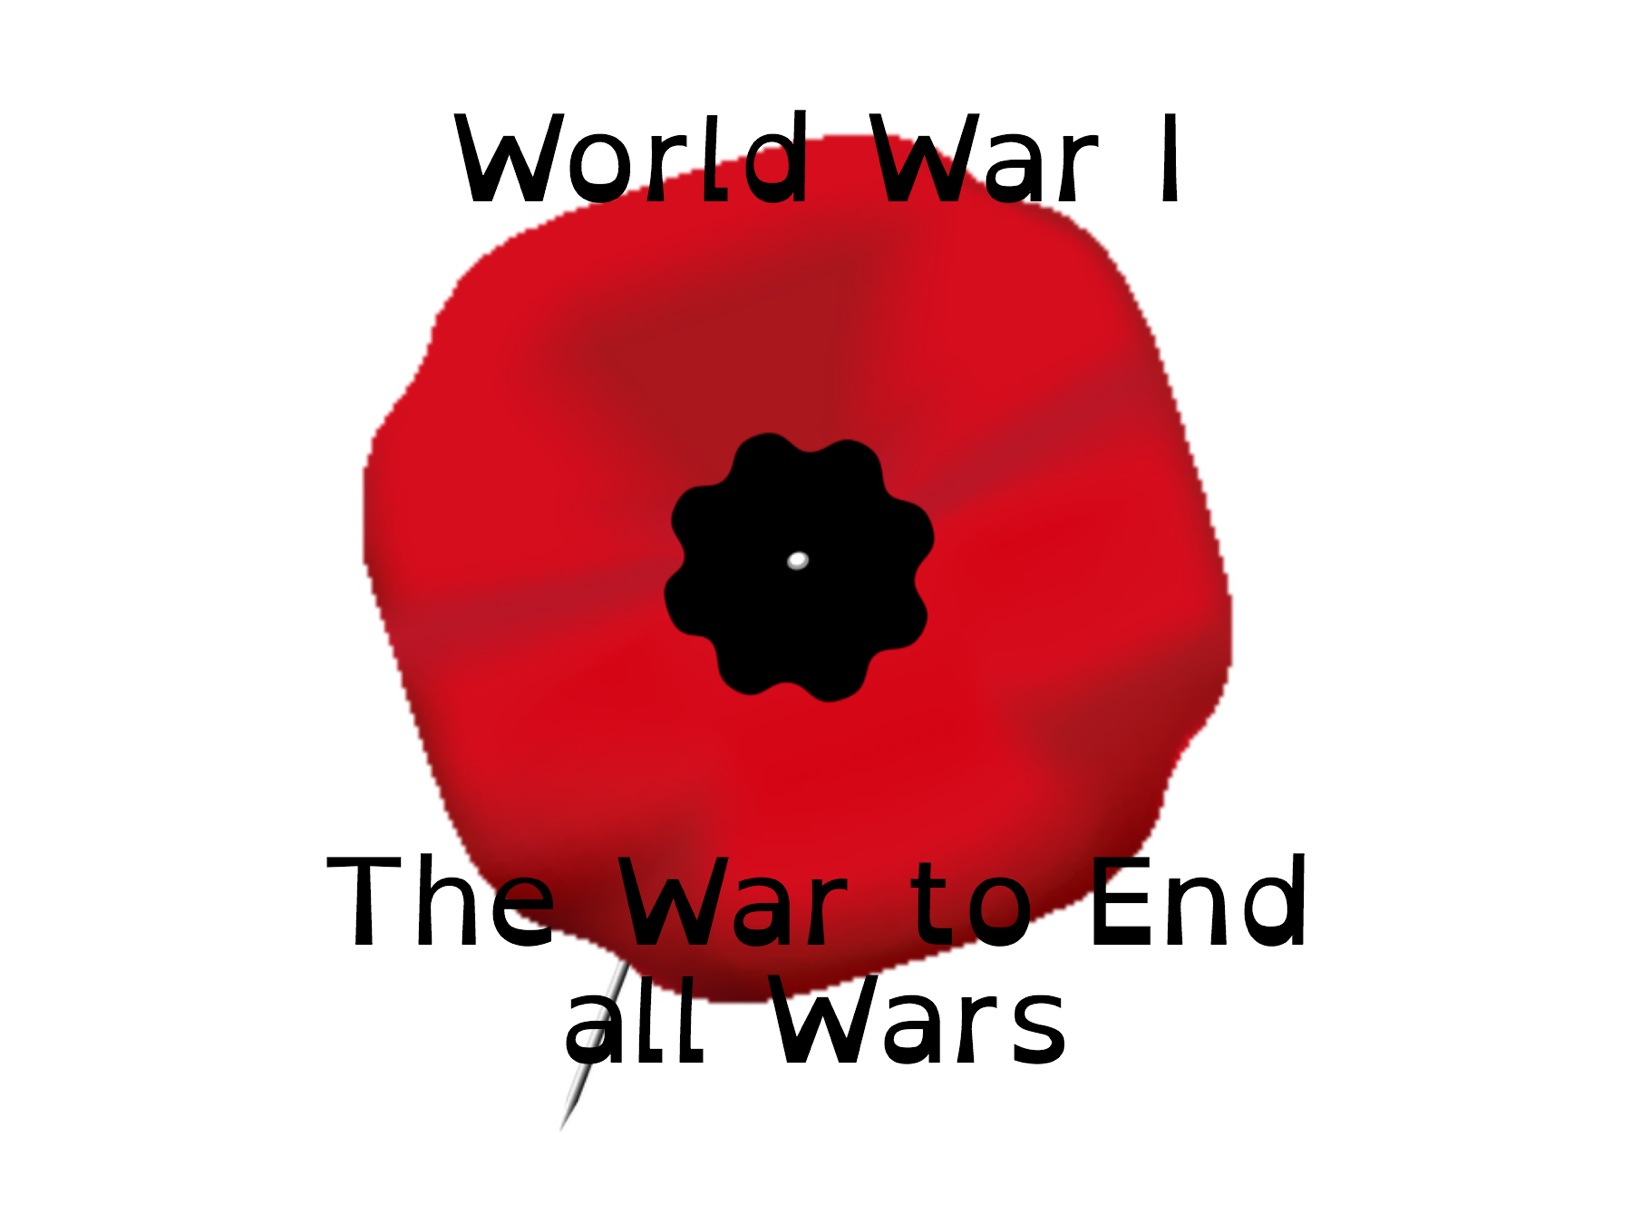 World War I-The War to end all Wars